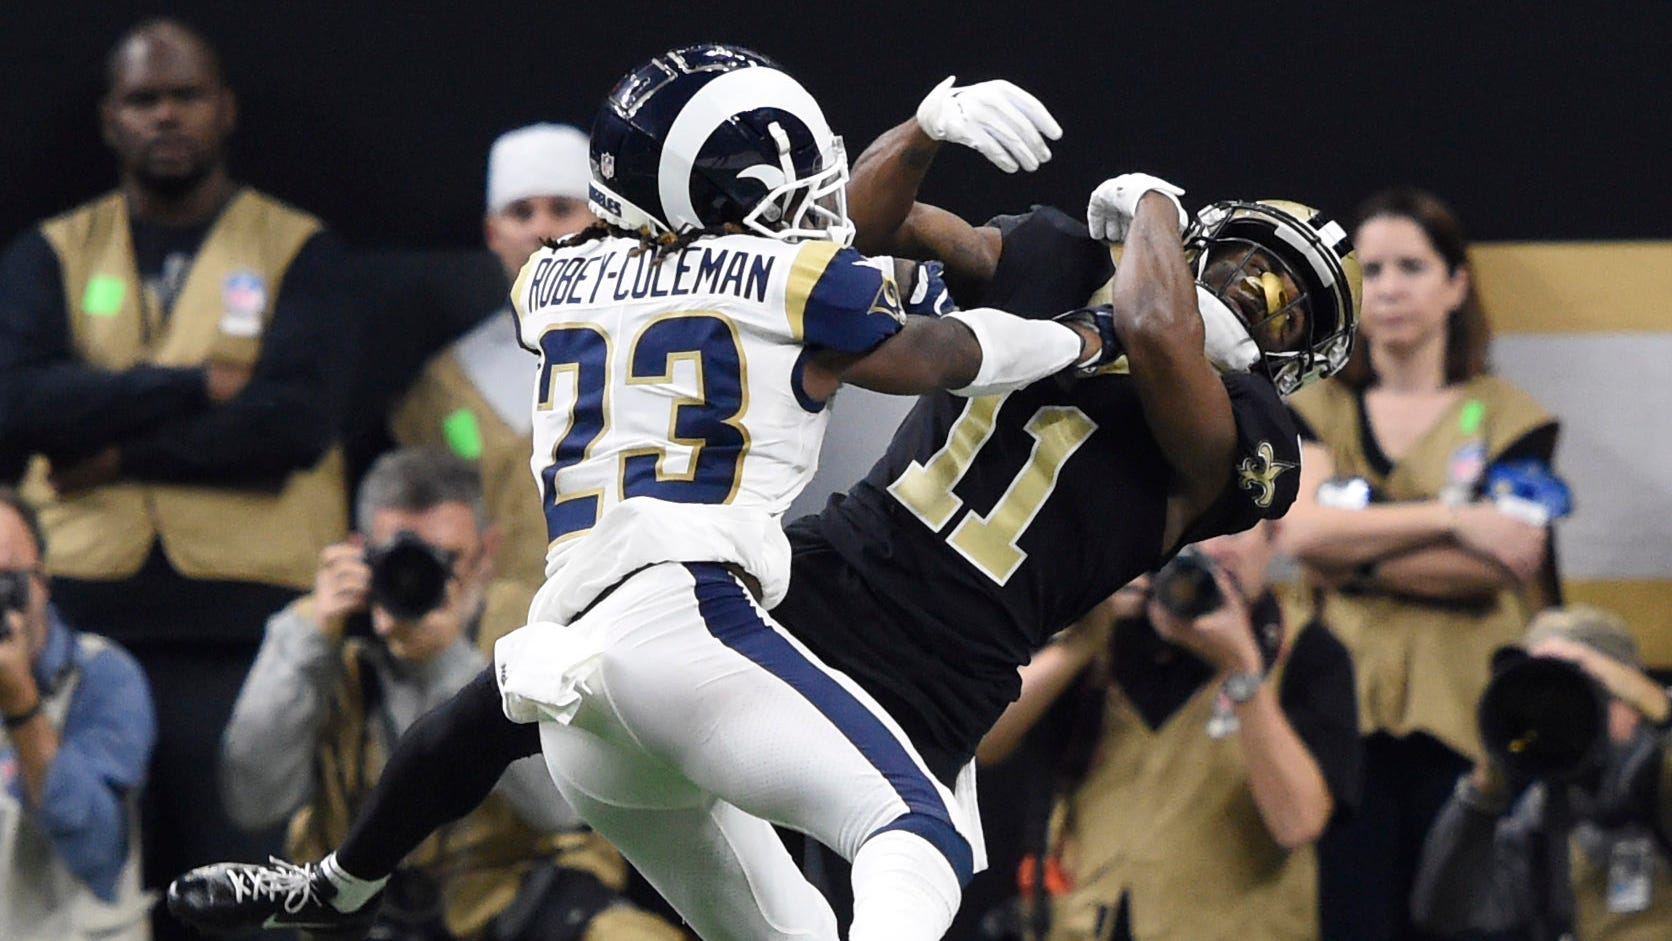 Rams defensive back Nickell Robey-Coleman (23) breaks up a pass intended for Saints wide receiver Tommylee Lewis (11).